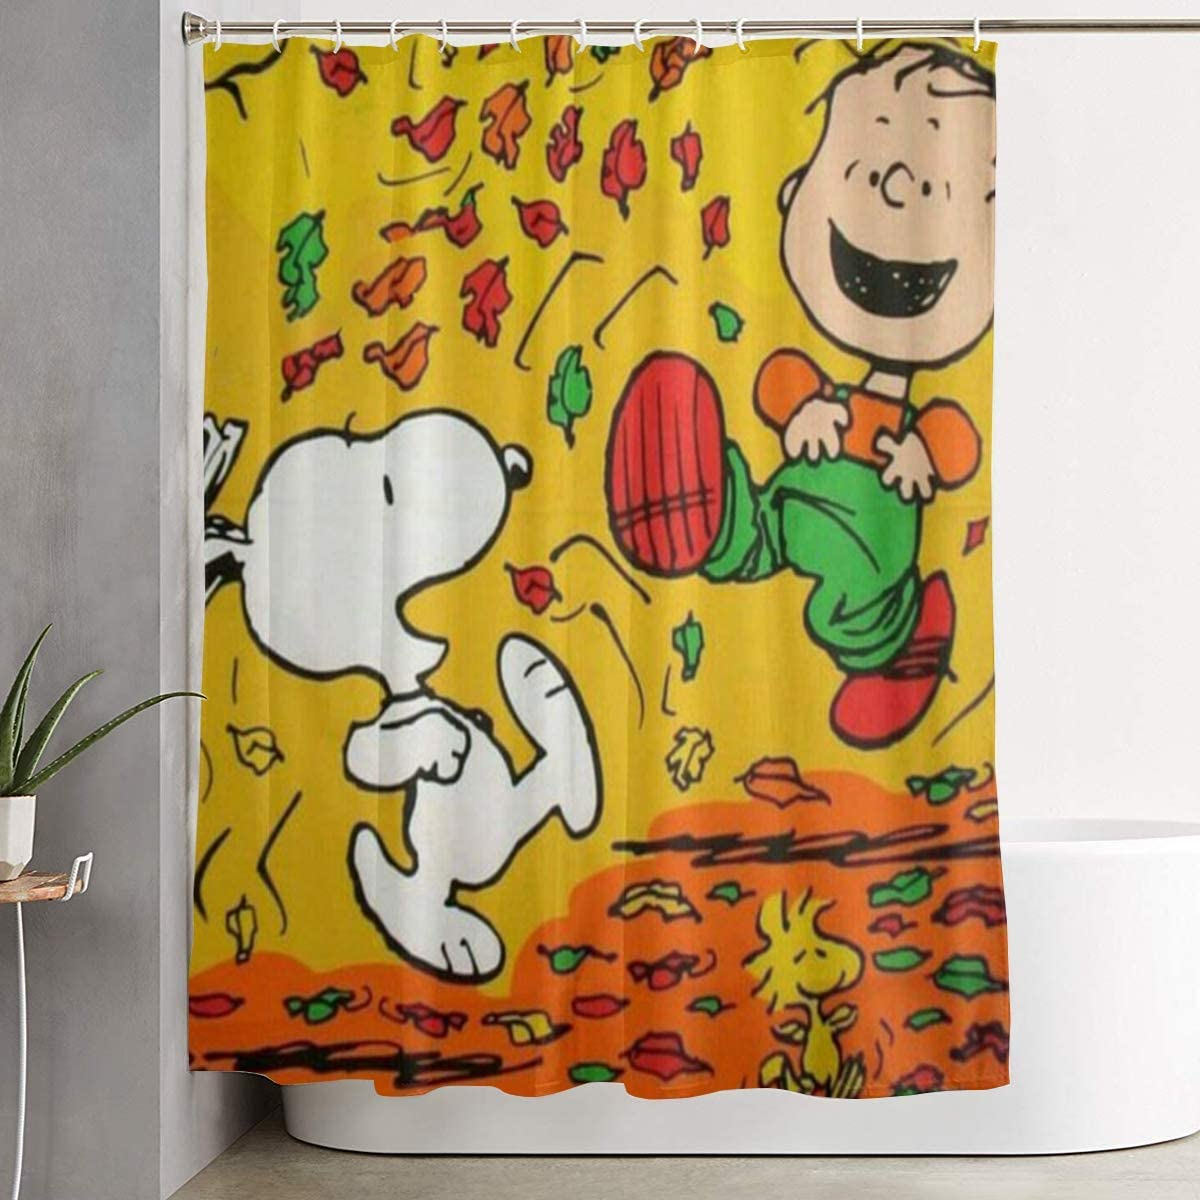 Pooizsdzzz Happy Fall Snoopy Shower Curtain Decor for Men Women Boys Girls 60x72 in